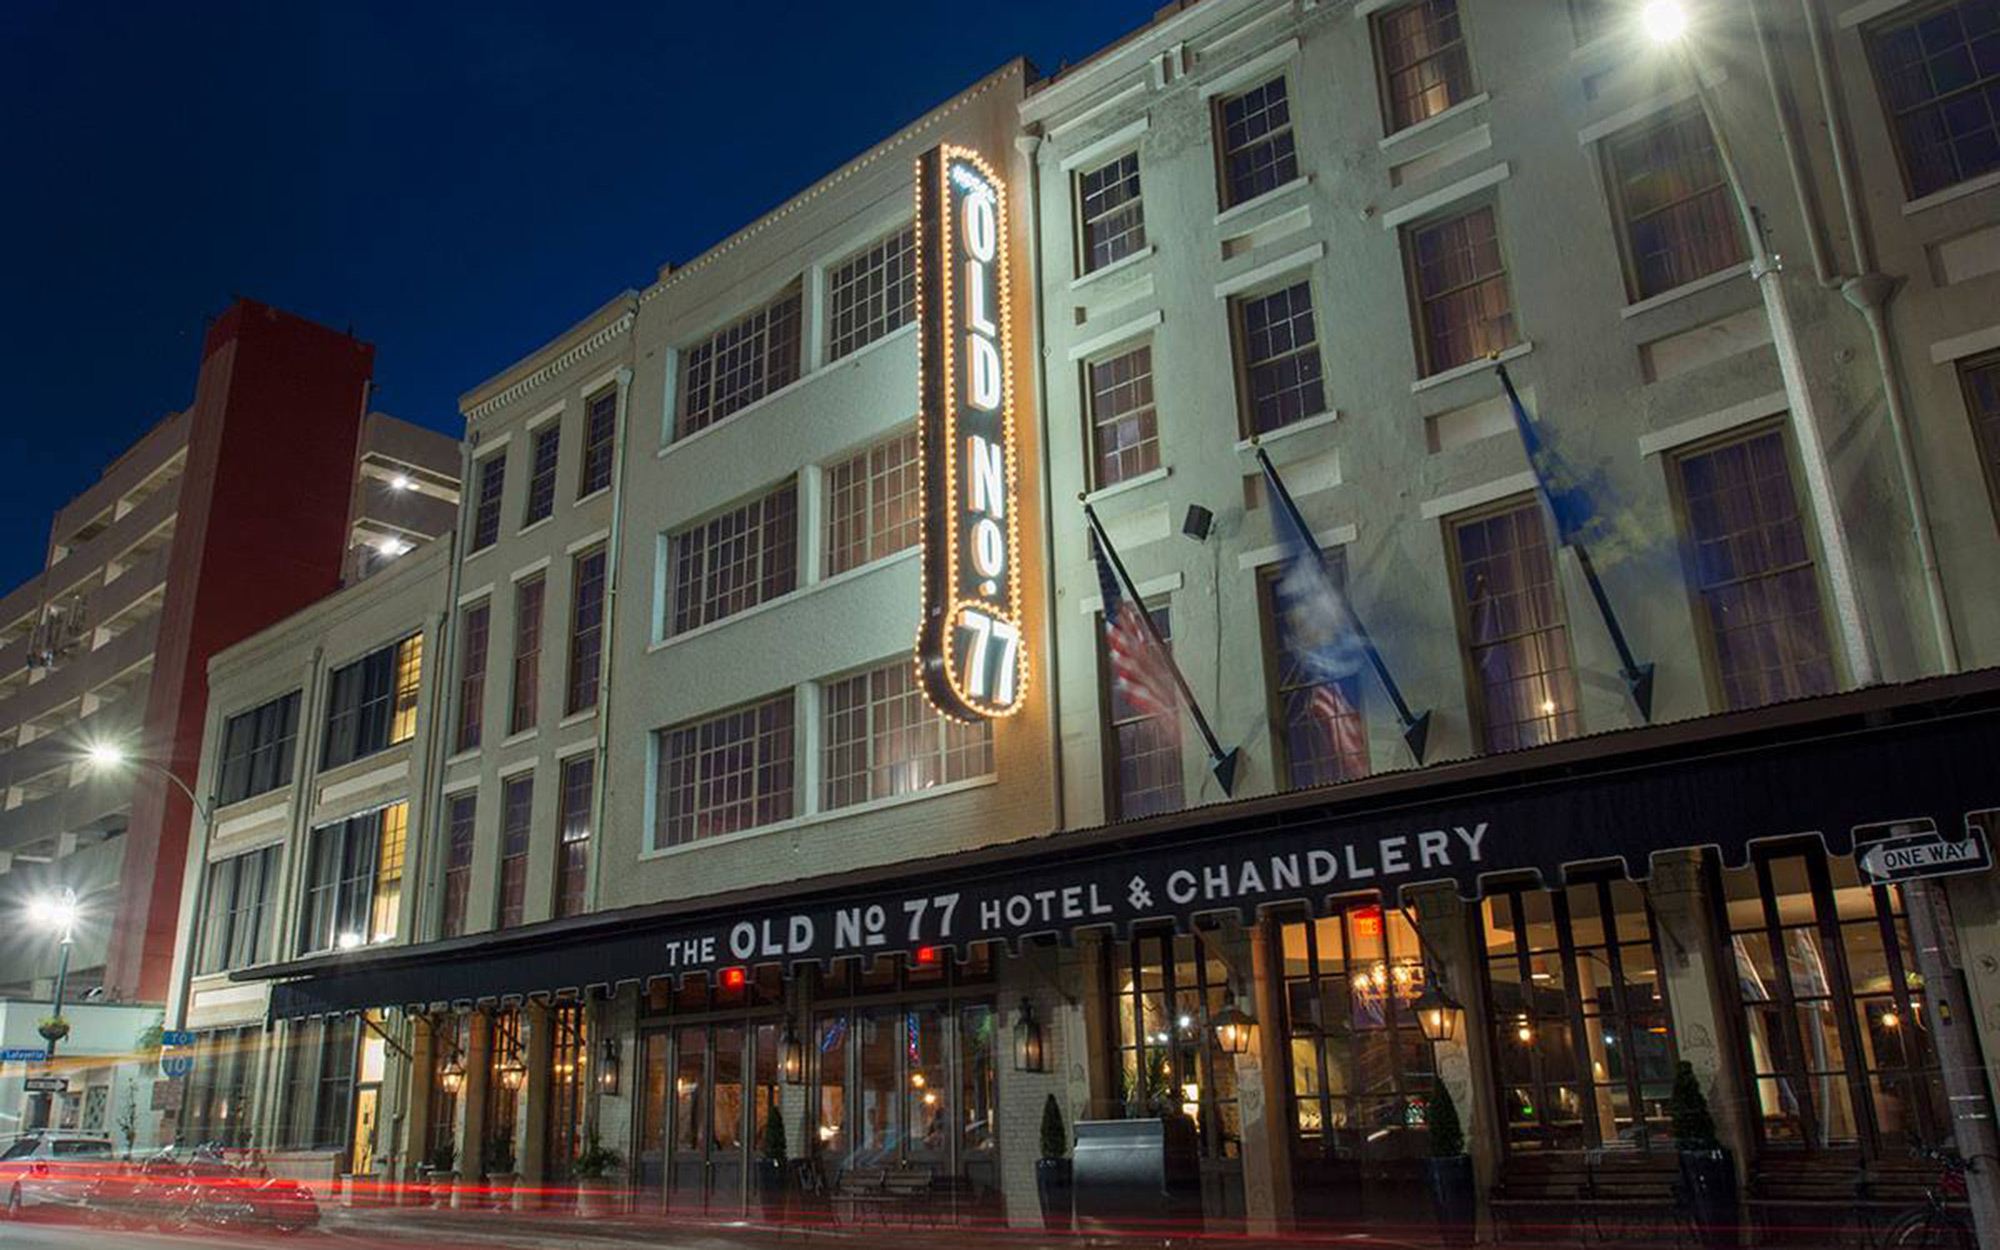 Coolest New Urban Hotels: The Old No. 77 Hotel & Chandlery, New Orleans, Louisiana